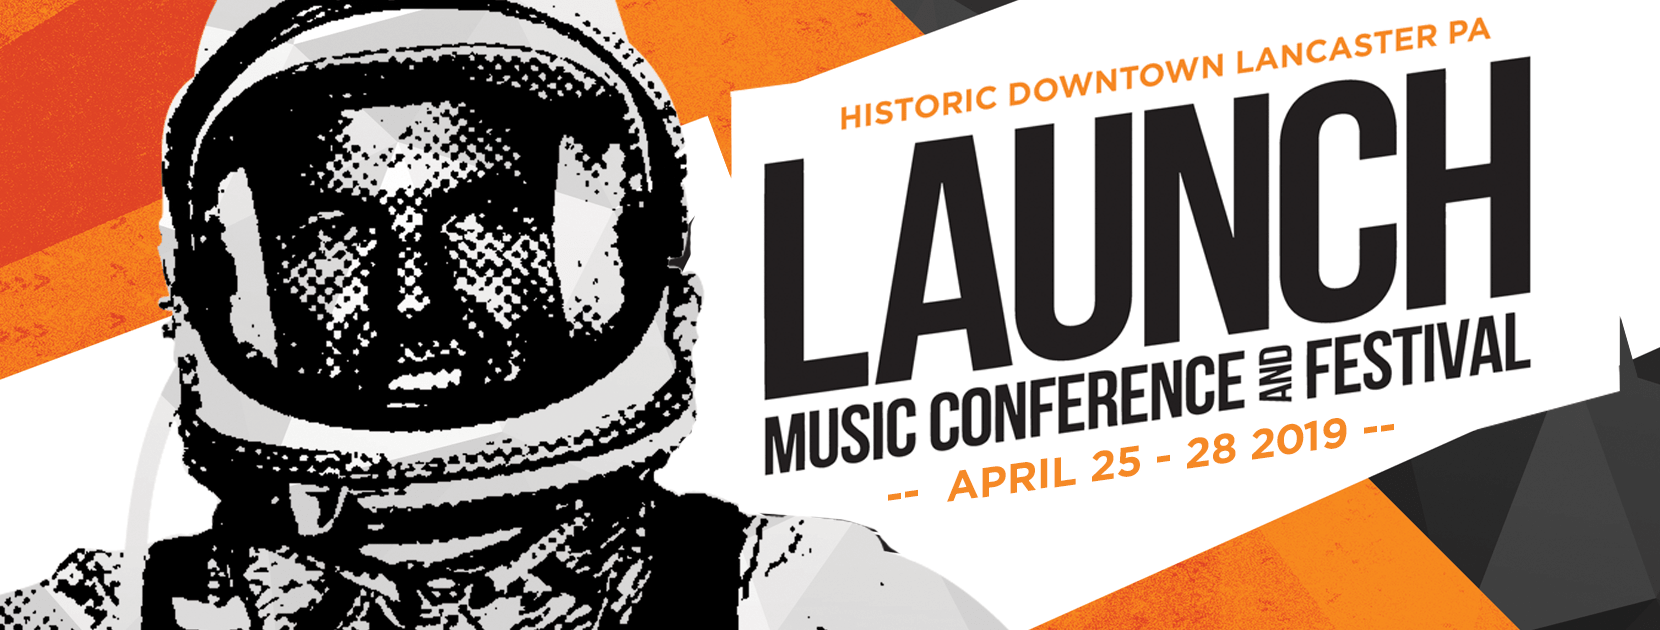 LAUNCH Music Conference and Festival.png